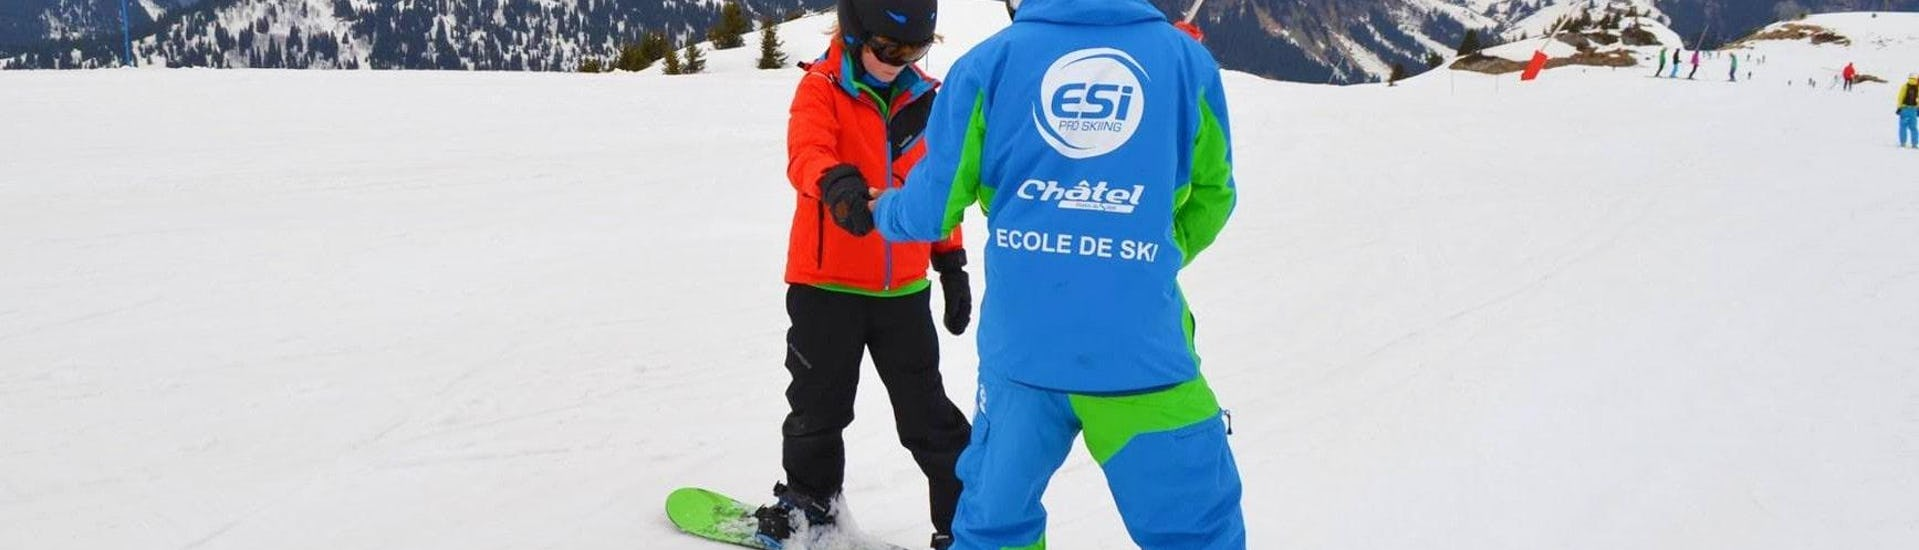 Private Snowboarding Lessons - Low Season - All Levels